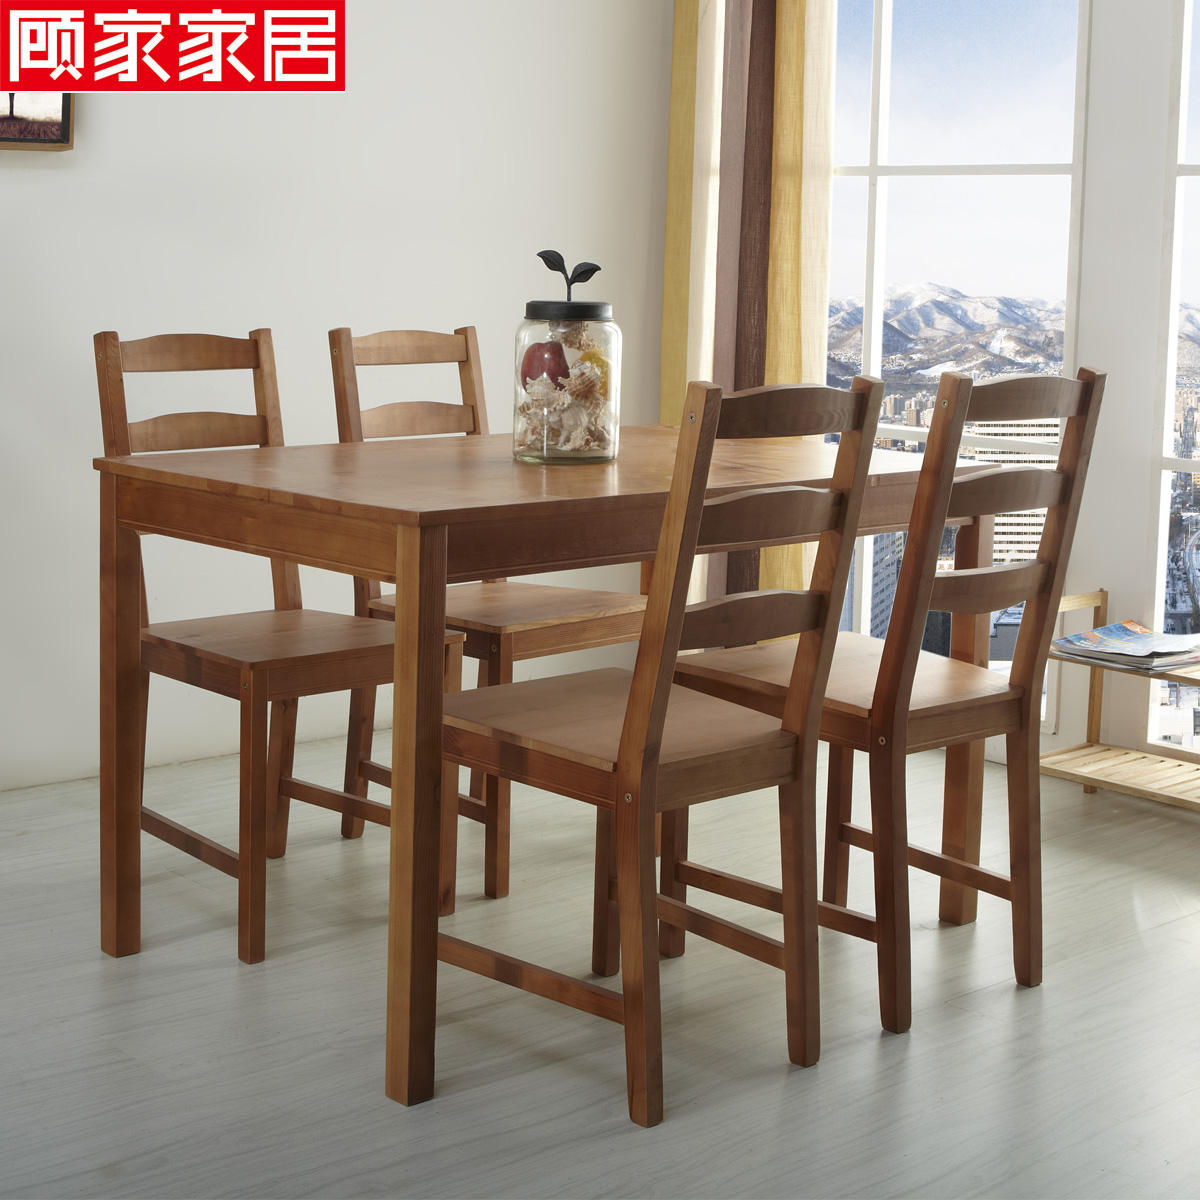 Wood Combo Chair: KUKA Solid Wood Table And Chair The Appropriate